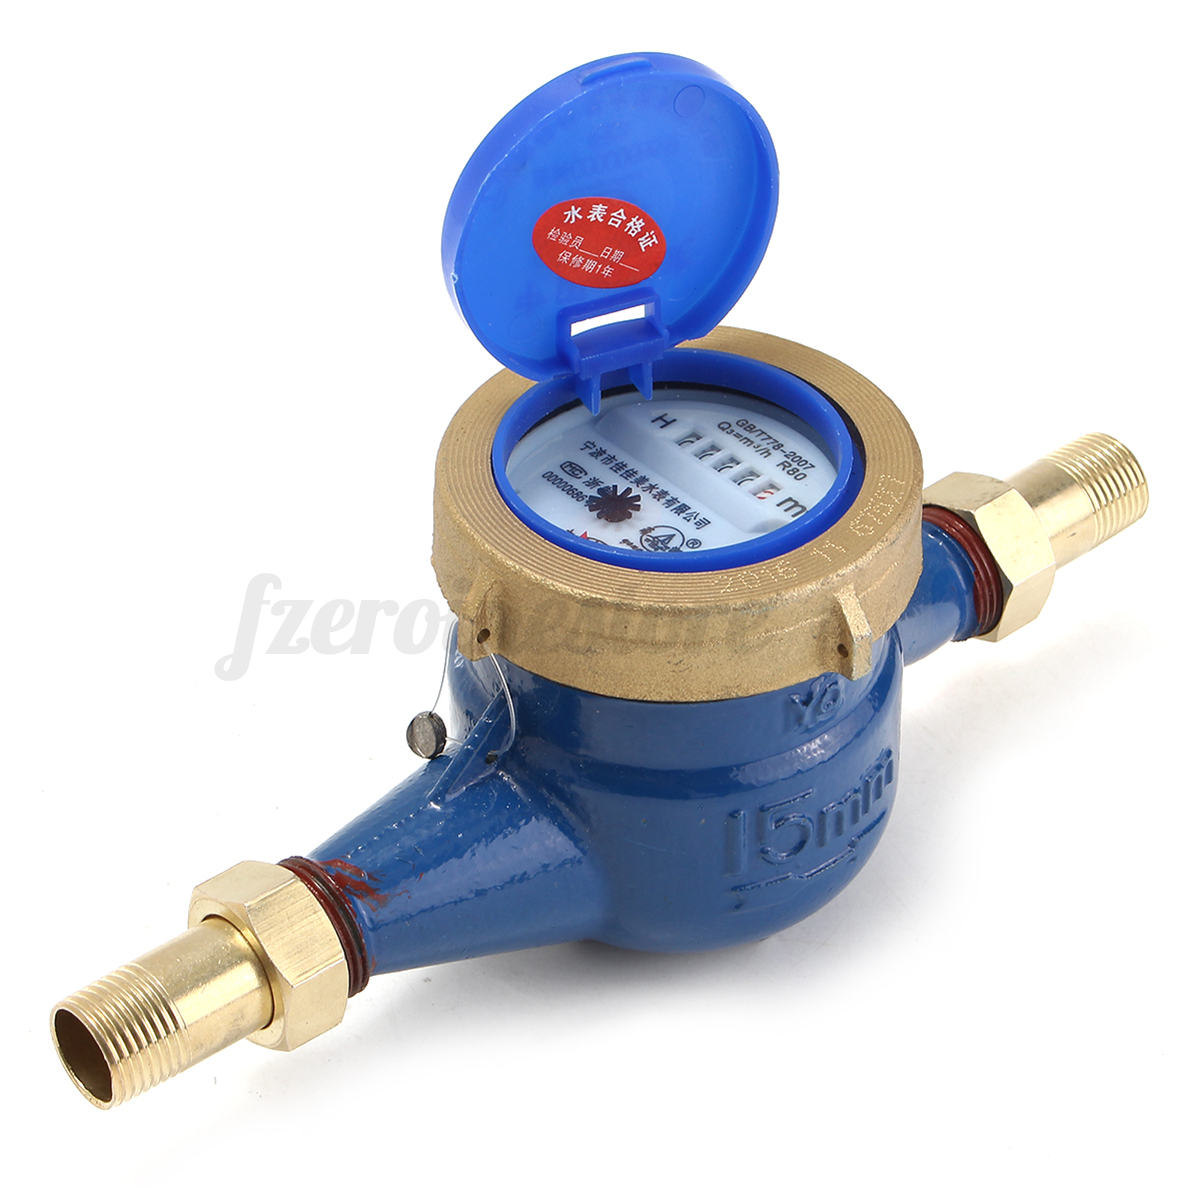 House Water Meter : Mm tape cold water meter copper counter home